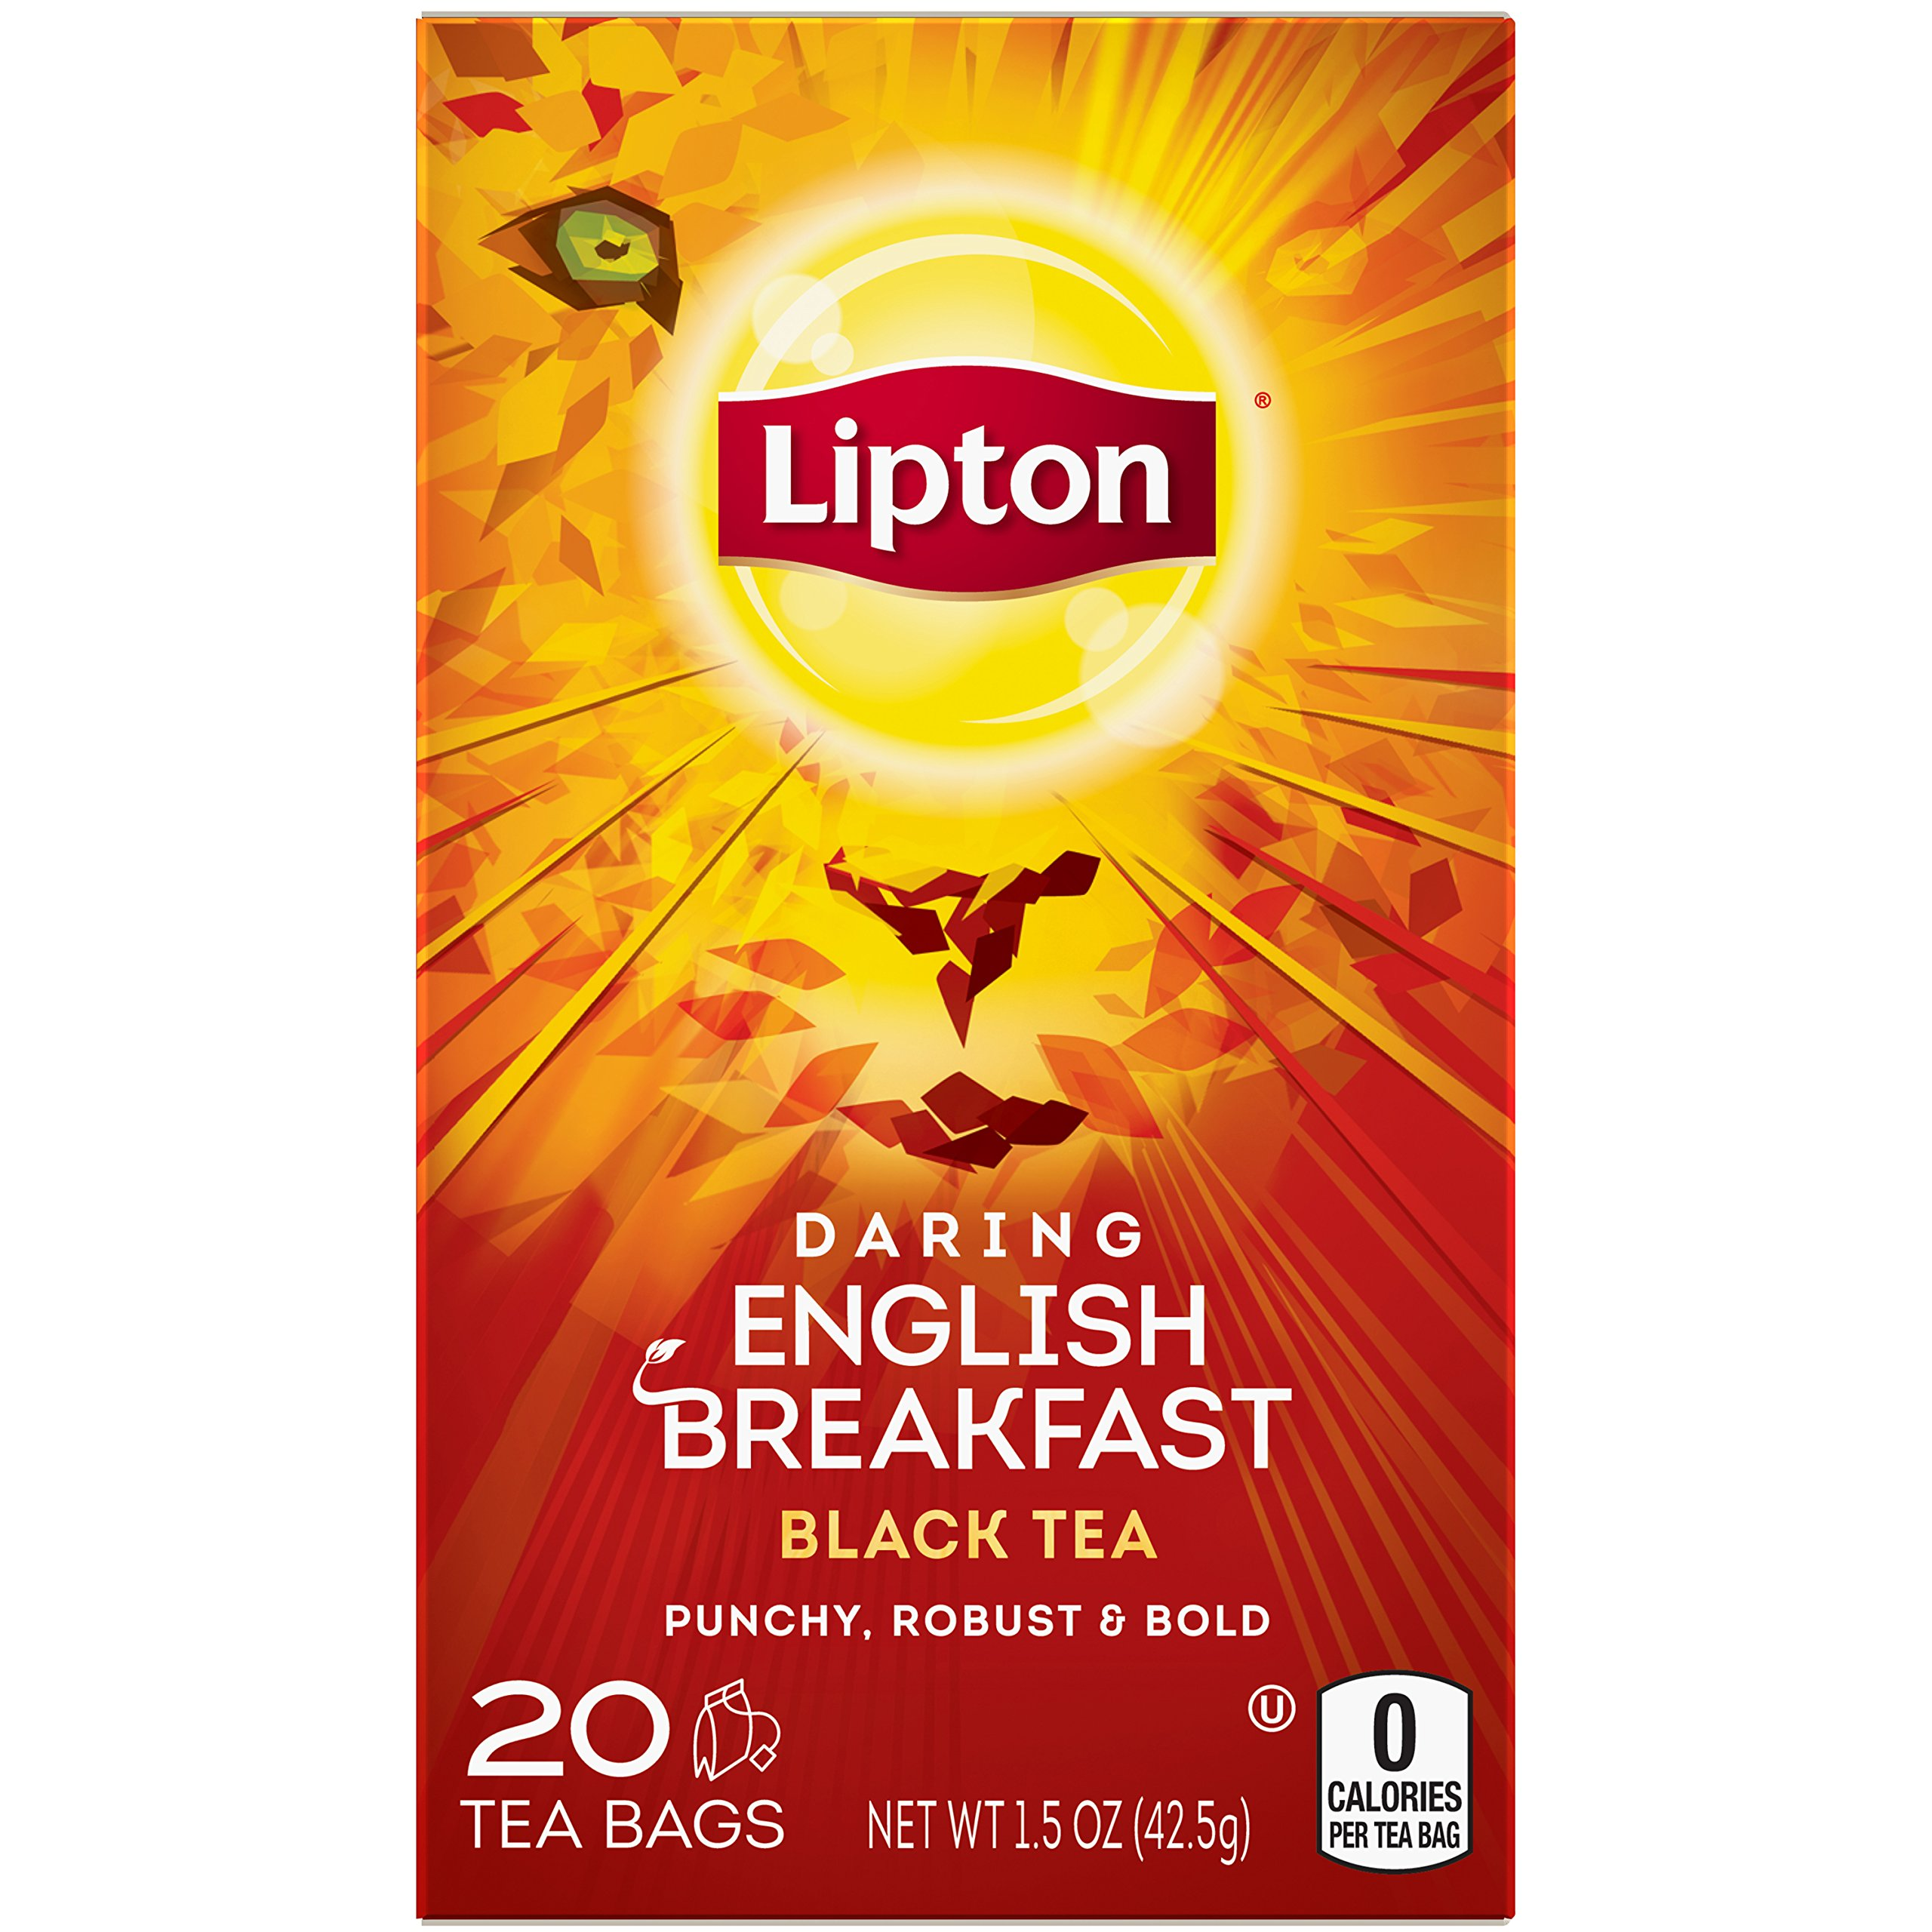 Lipton Black Tea Bags Daring English Breakfast 20 ct - Pack of 6 by Lipton